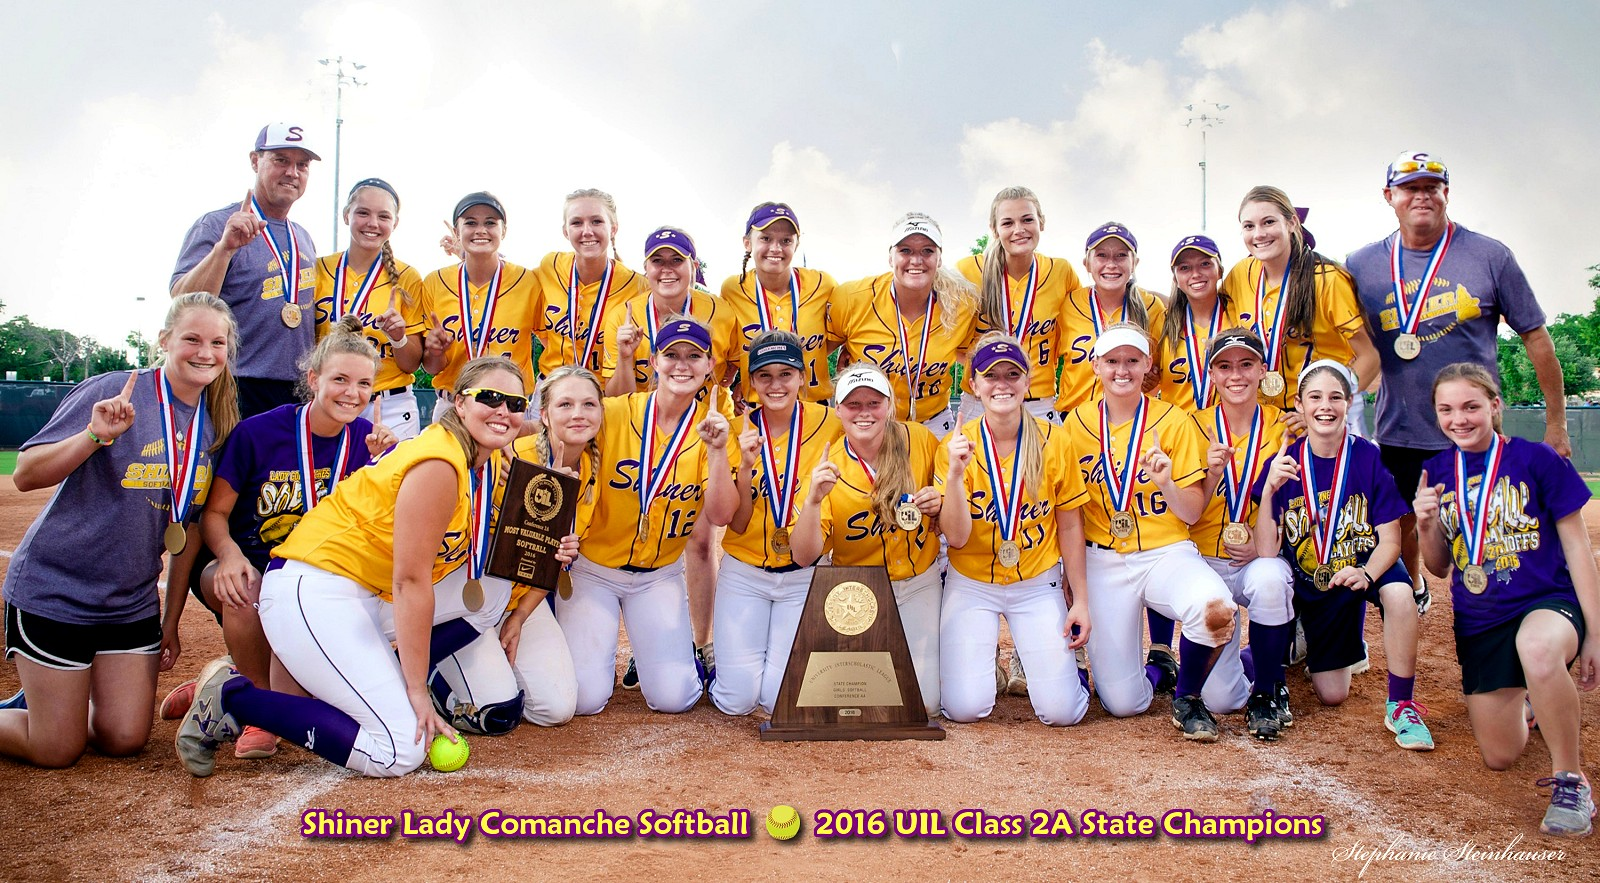 Shiner Lady Comanches - 2016 Class 2A State Softball Champions